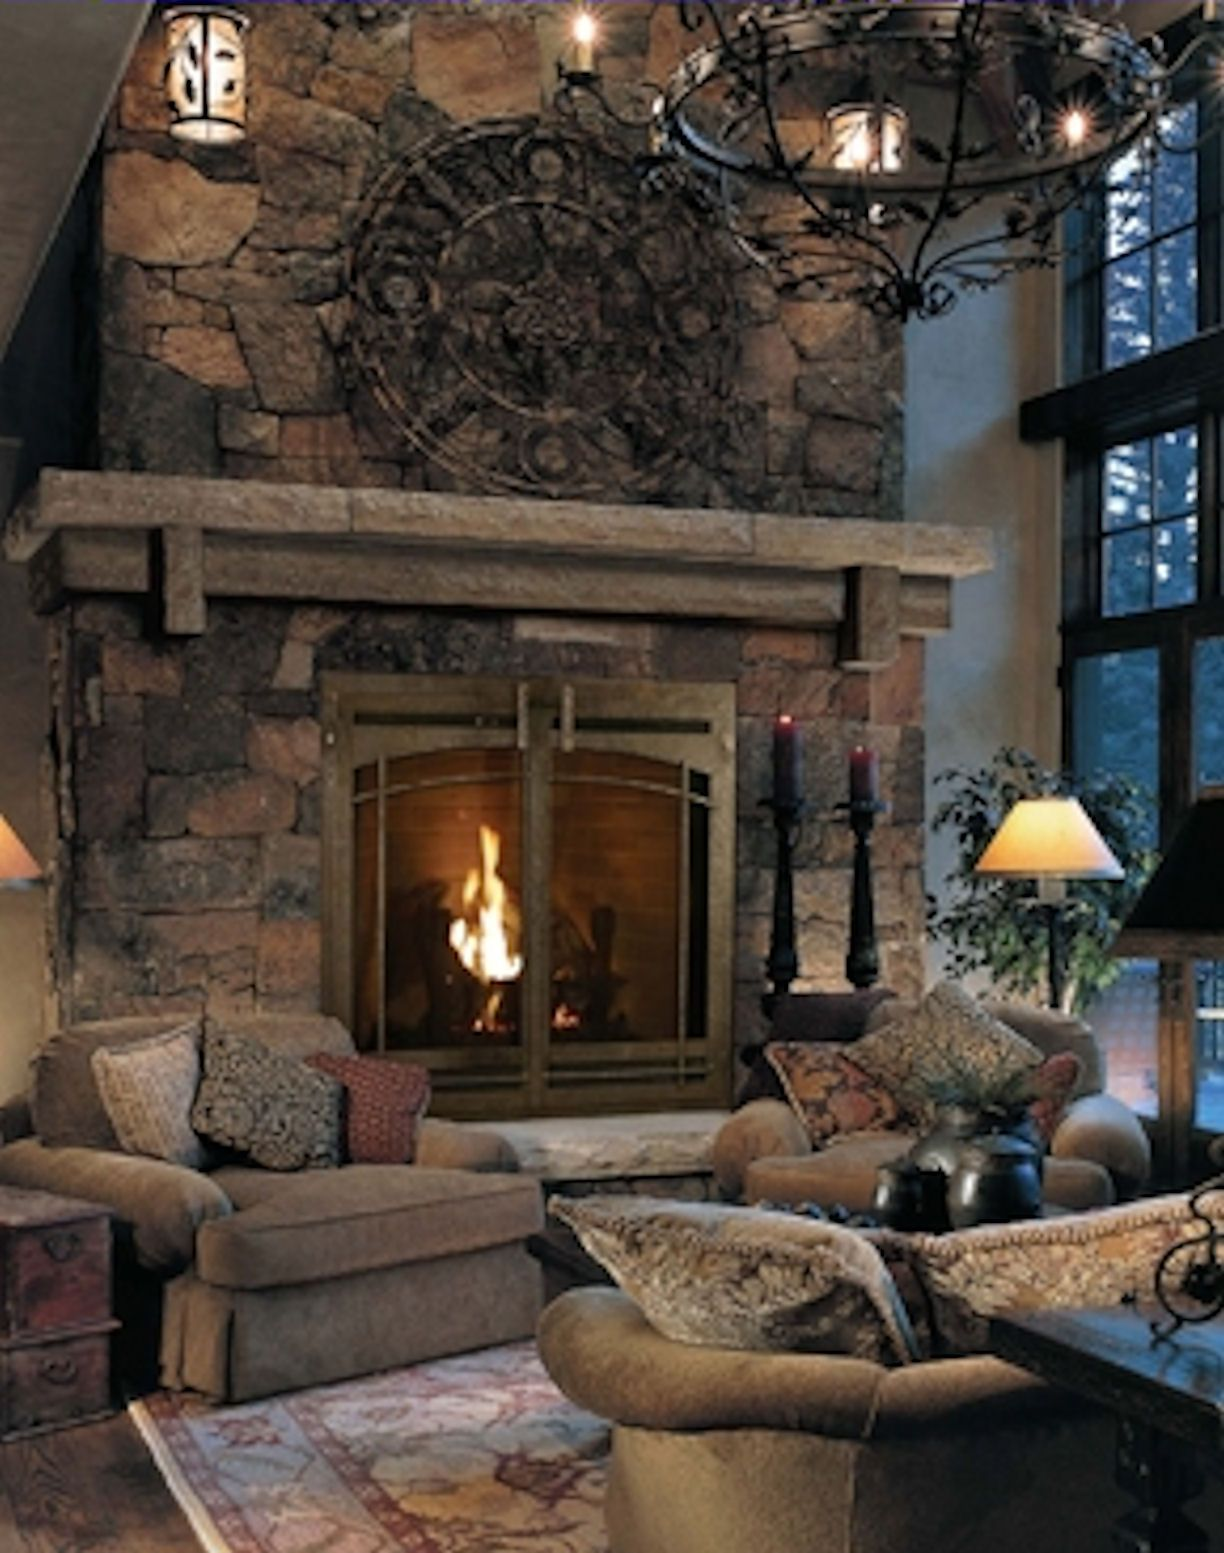 1800s Country Homes: Stone Fireplace With Mantle And Hearth It's Ok But I